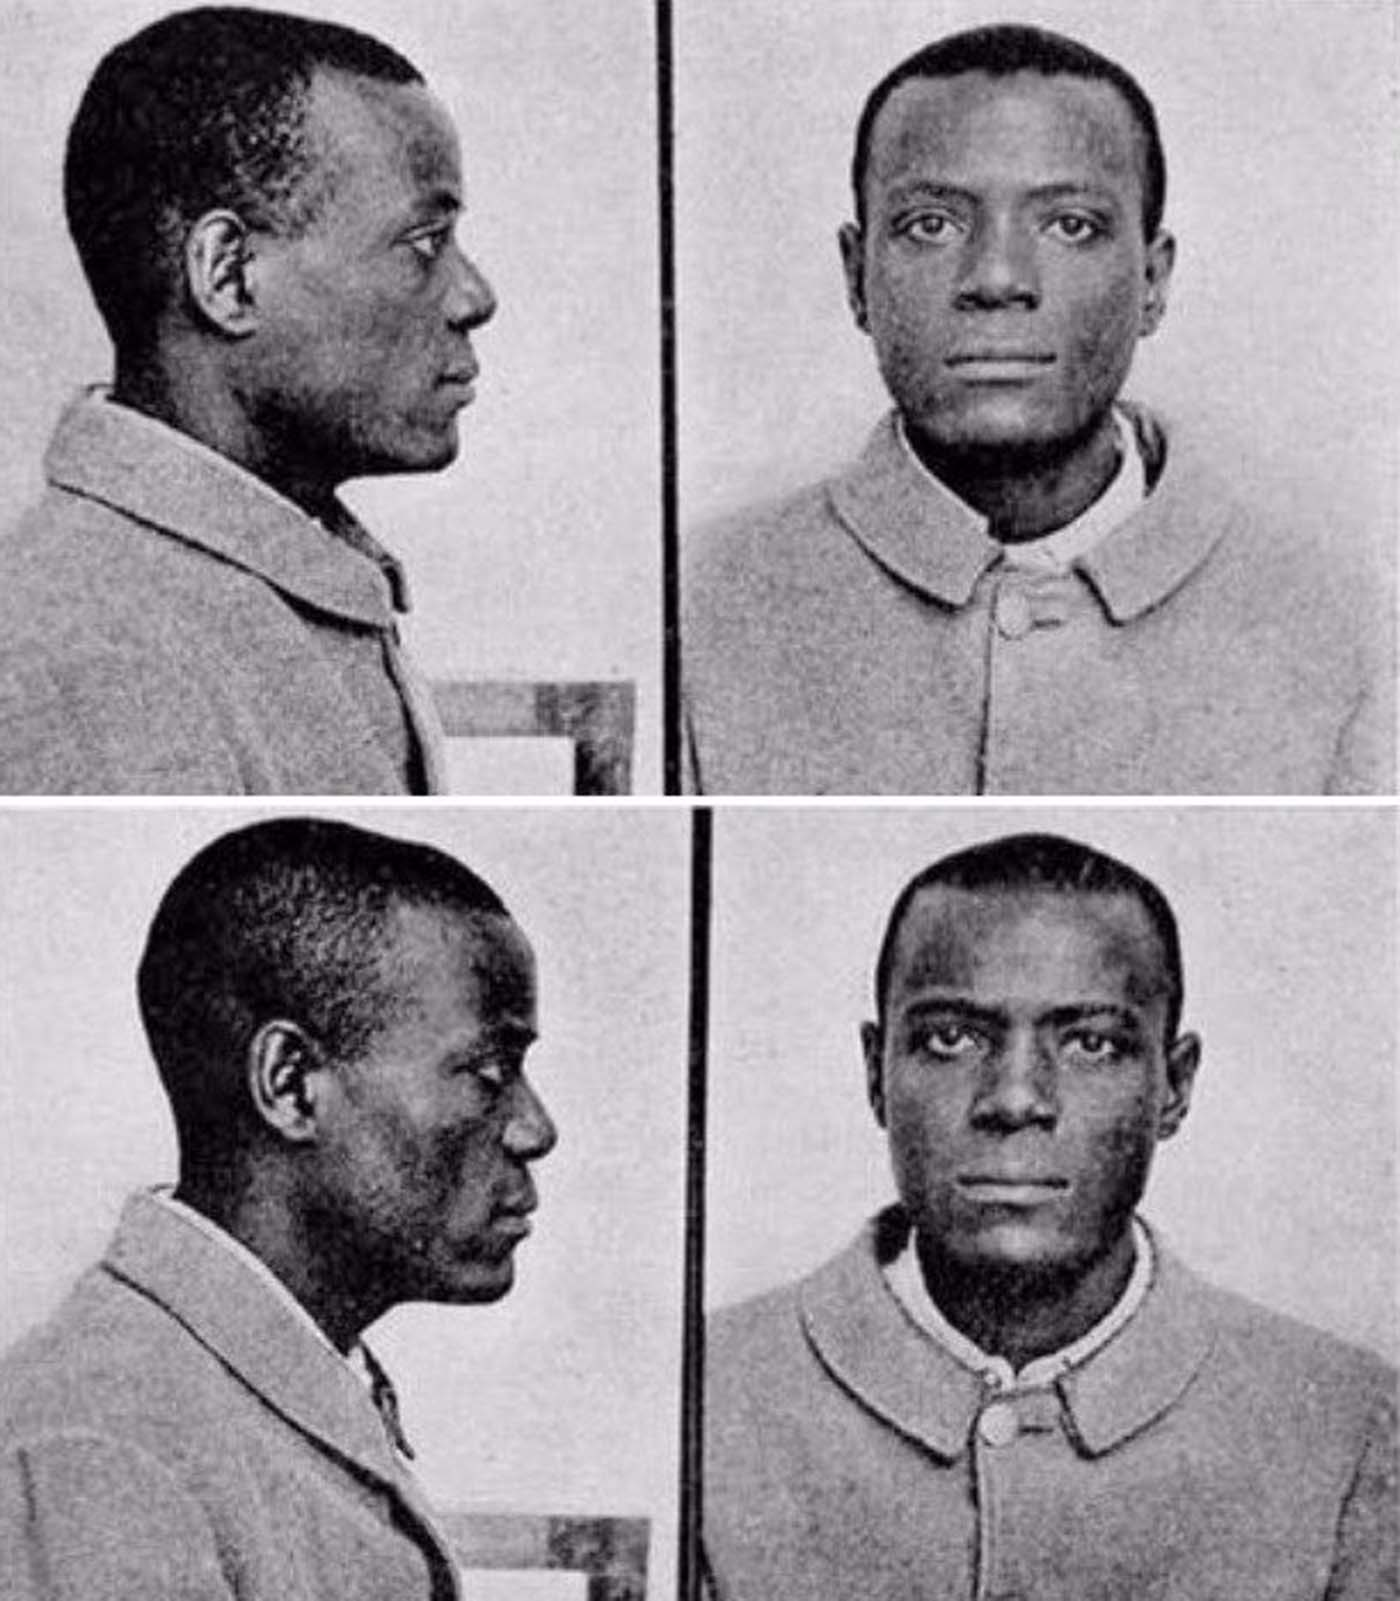 Will and William West case: The identical inmates that showed the need for fingerprinting, 1903